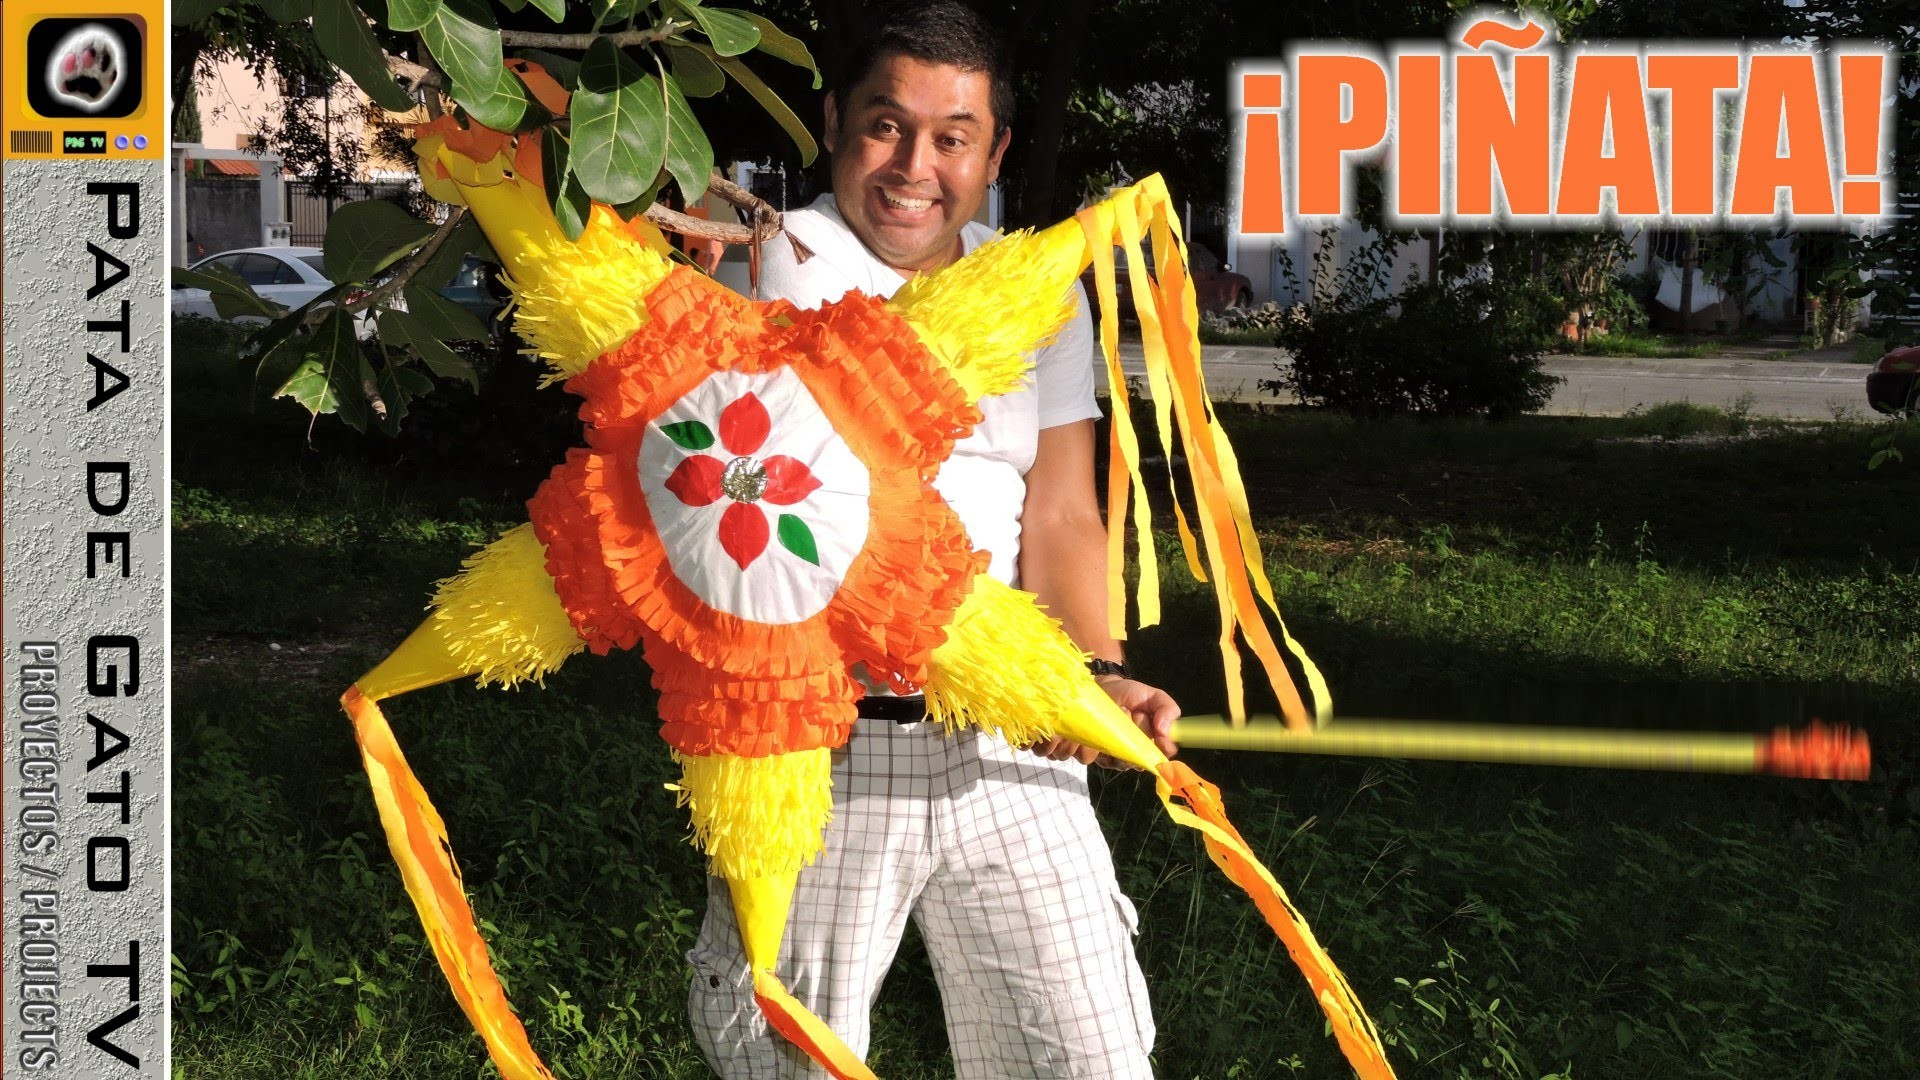 ¡Haz tu propia piñata!. Make your own pinata!